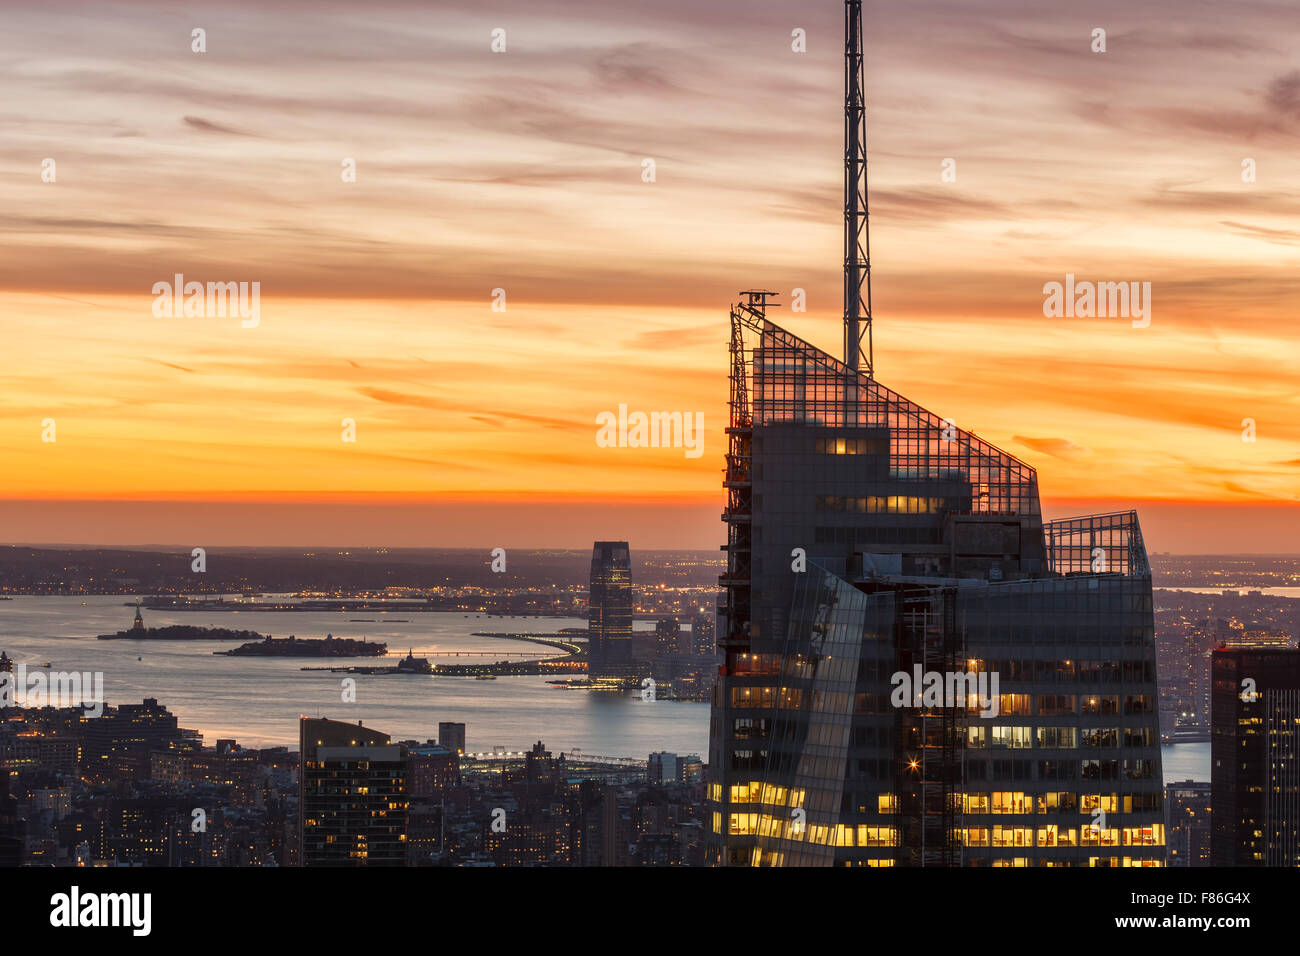 Aerial view of Midtown Manhattan and Bank of America Tower at sunset. The Statue of Liberty appears in New York - Stock Image